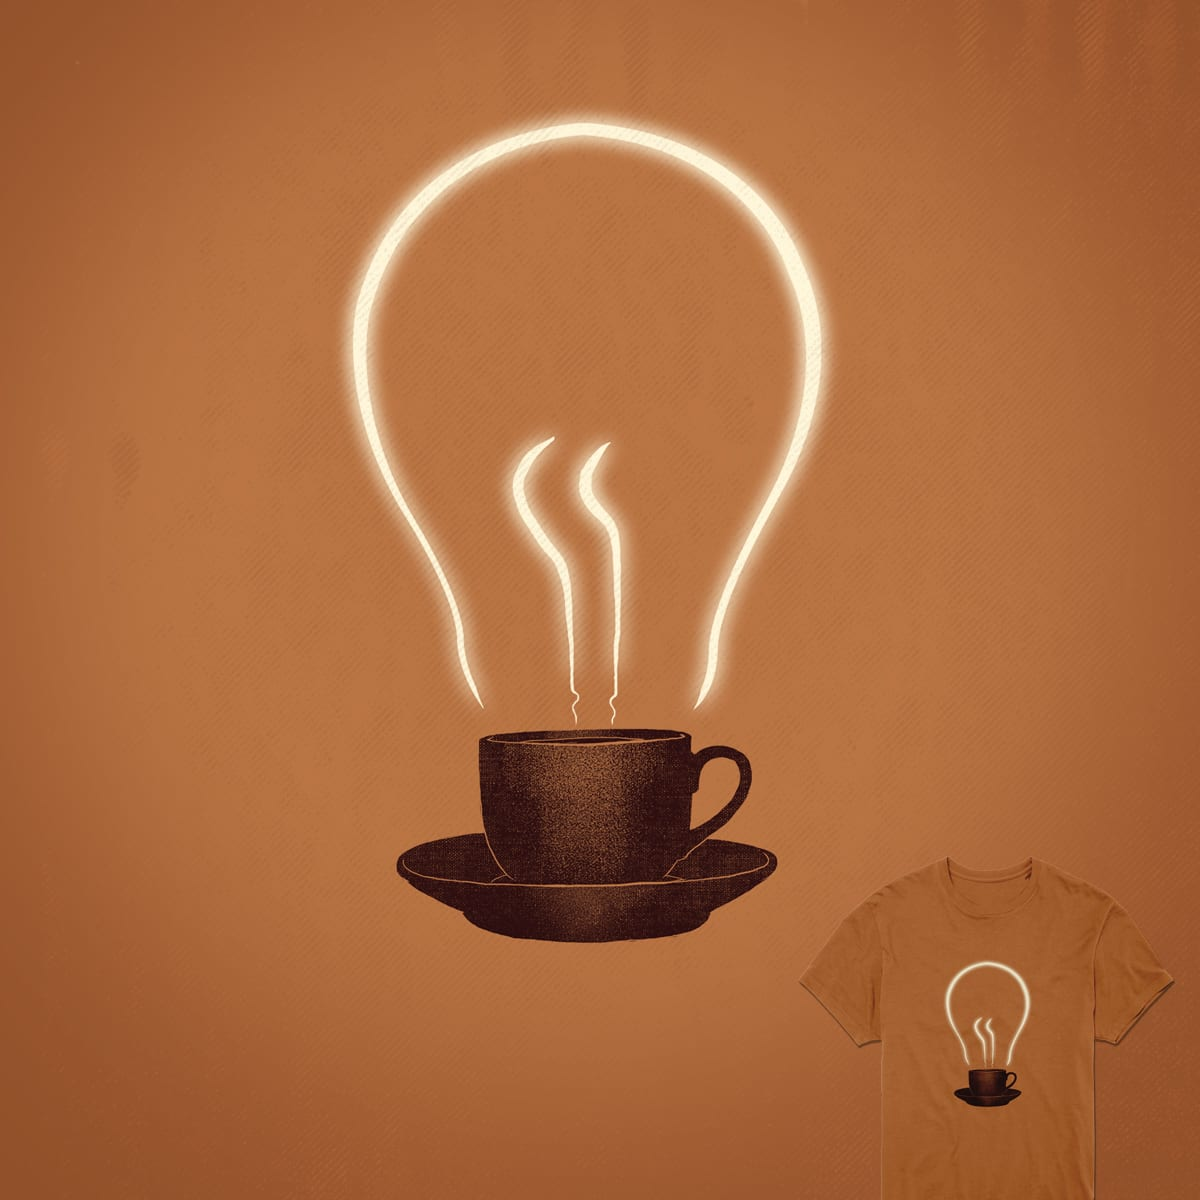 The power of coffee by digitalcarbine on Threadless